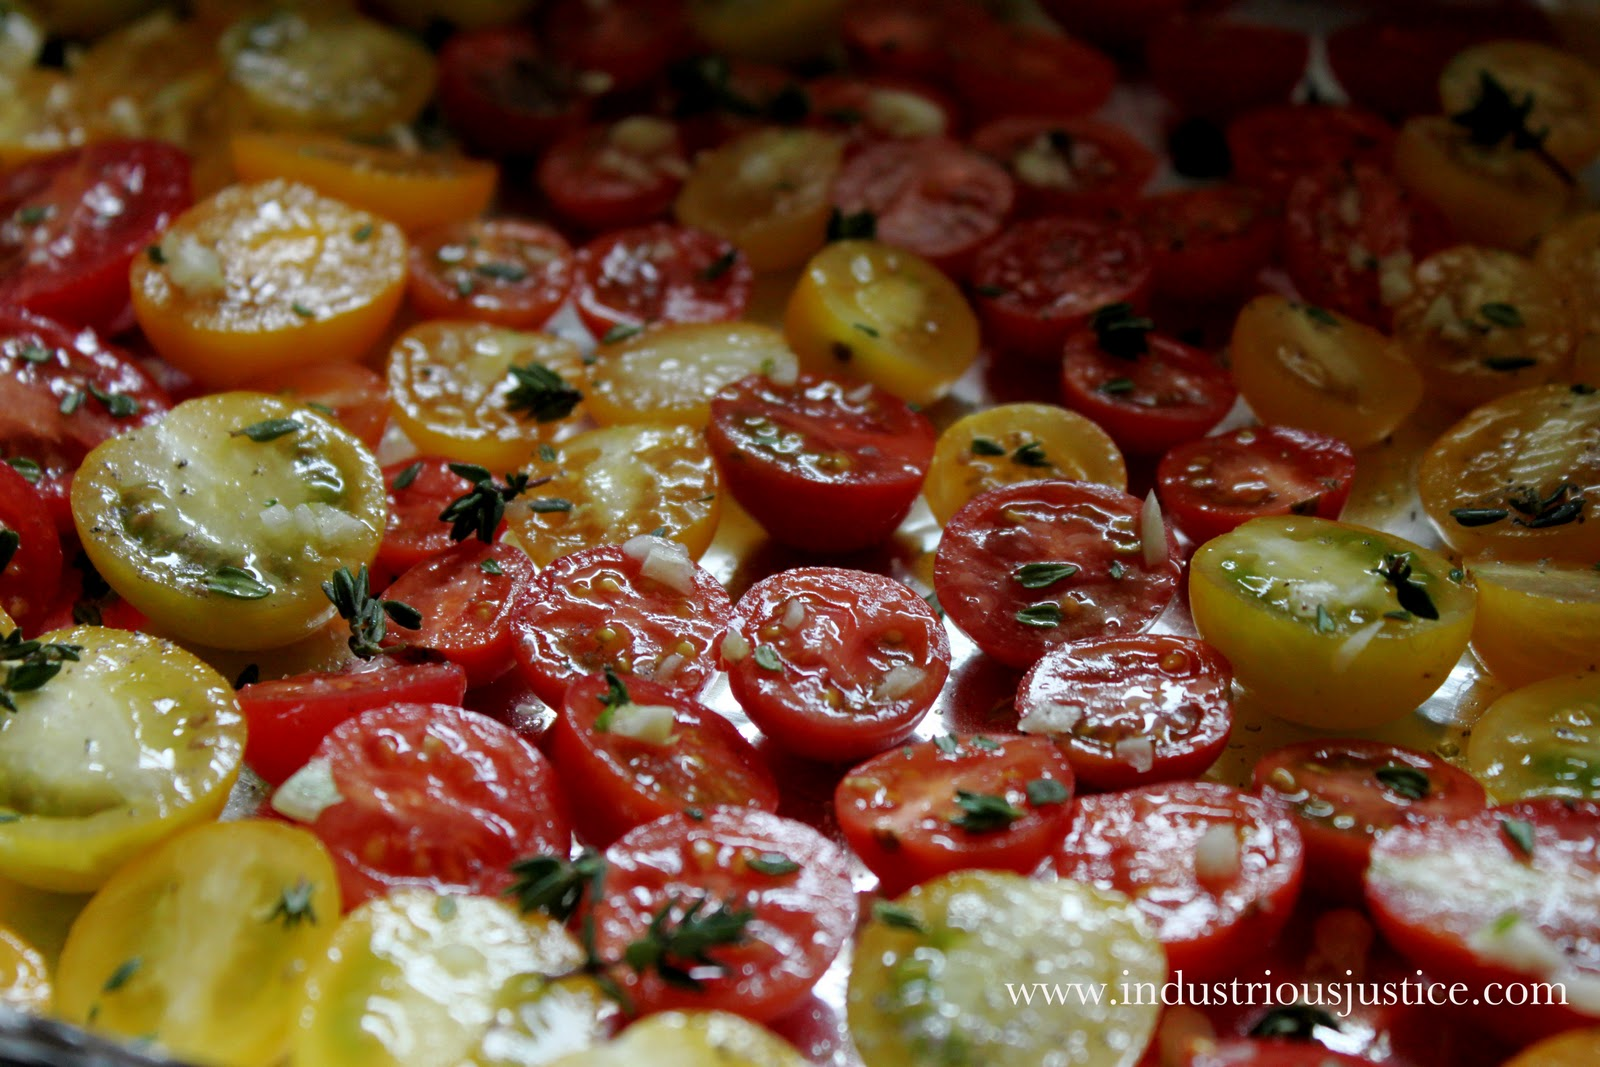 industrious justice: Recipe: Slow Roasted Tomatoes